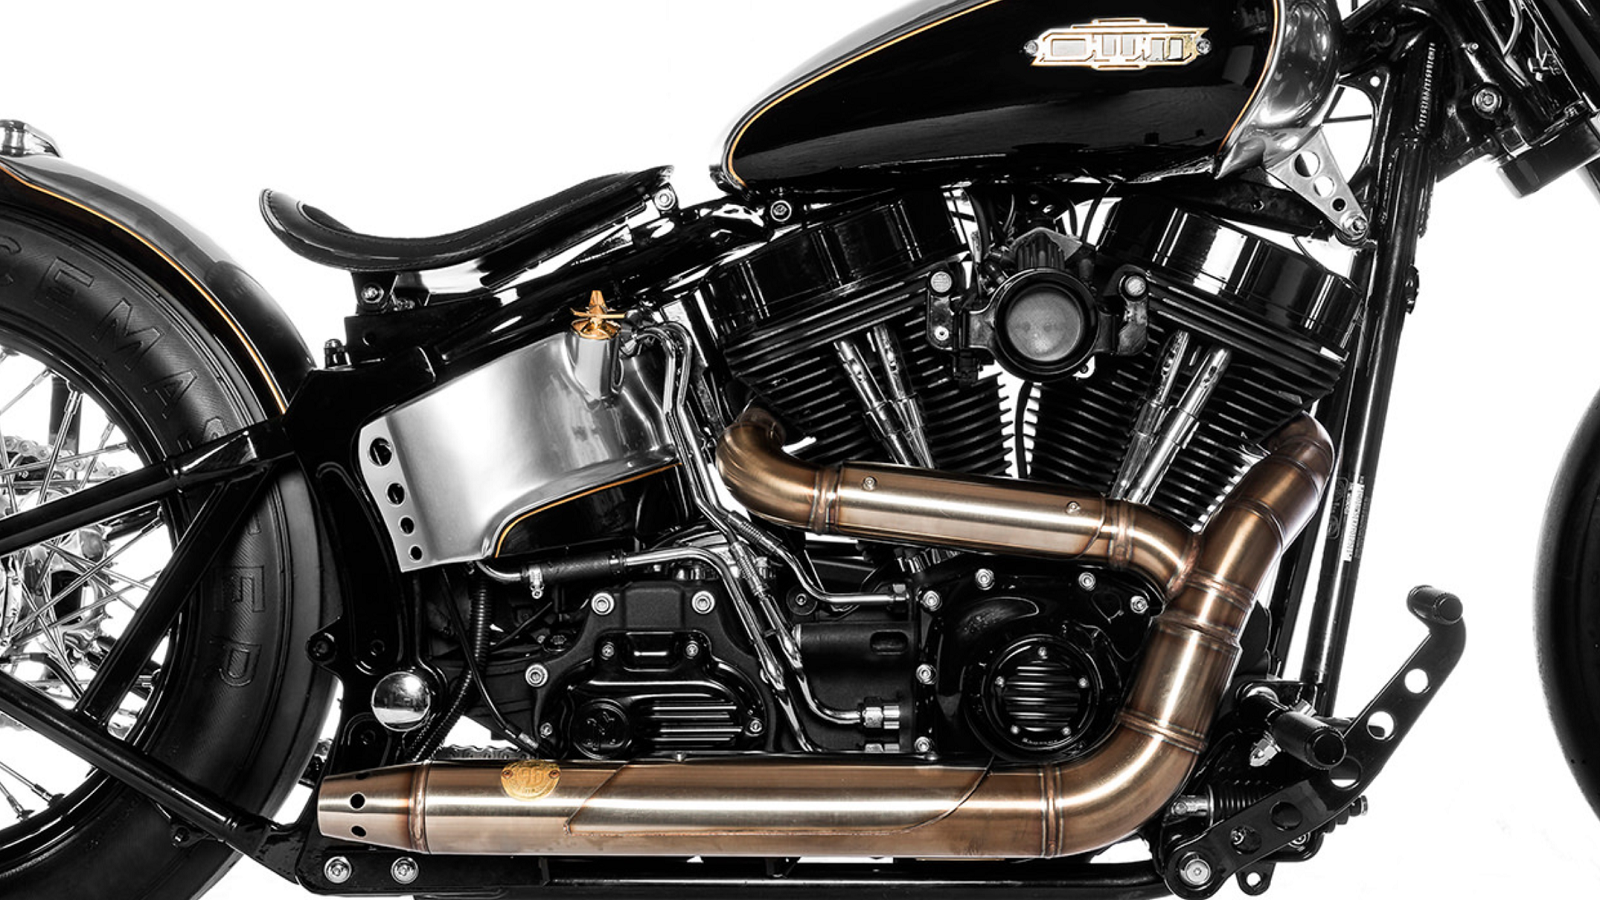 Insanely Detailed Custom Heritage Softail Built by a Champion